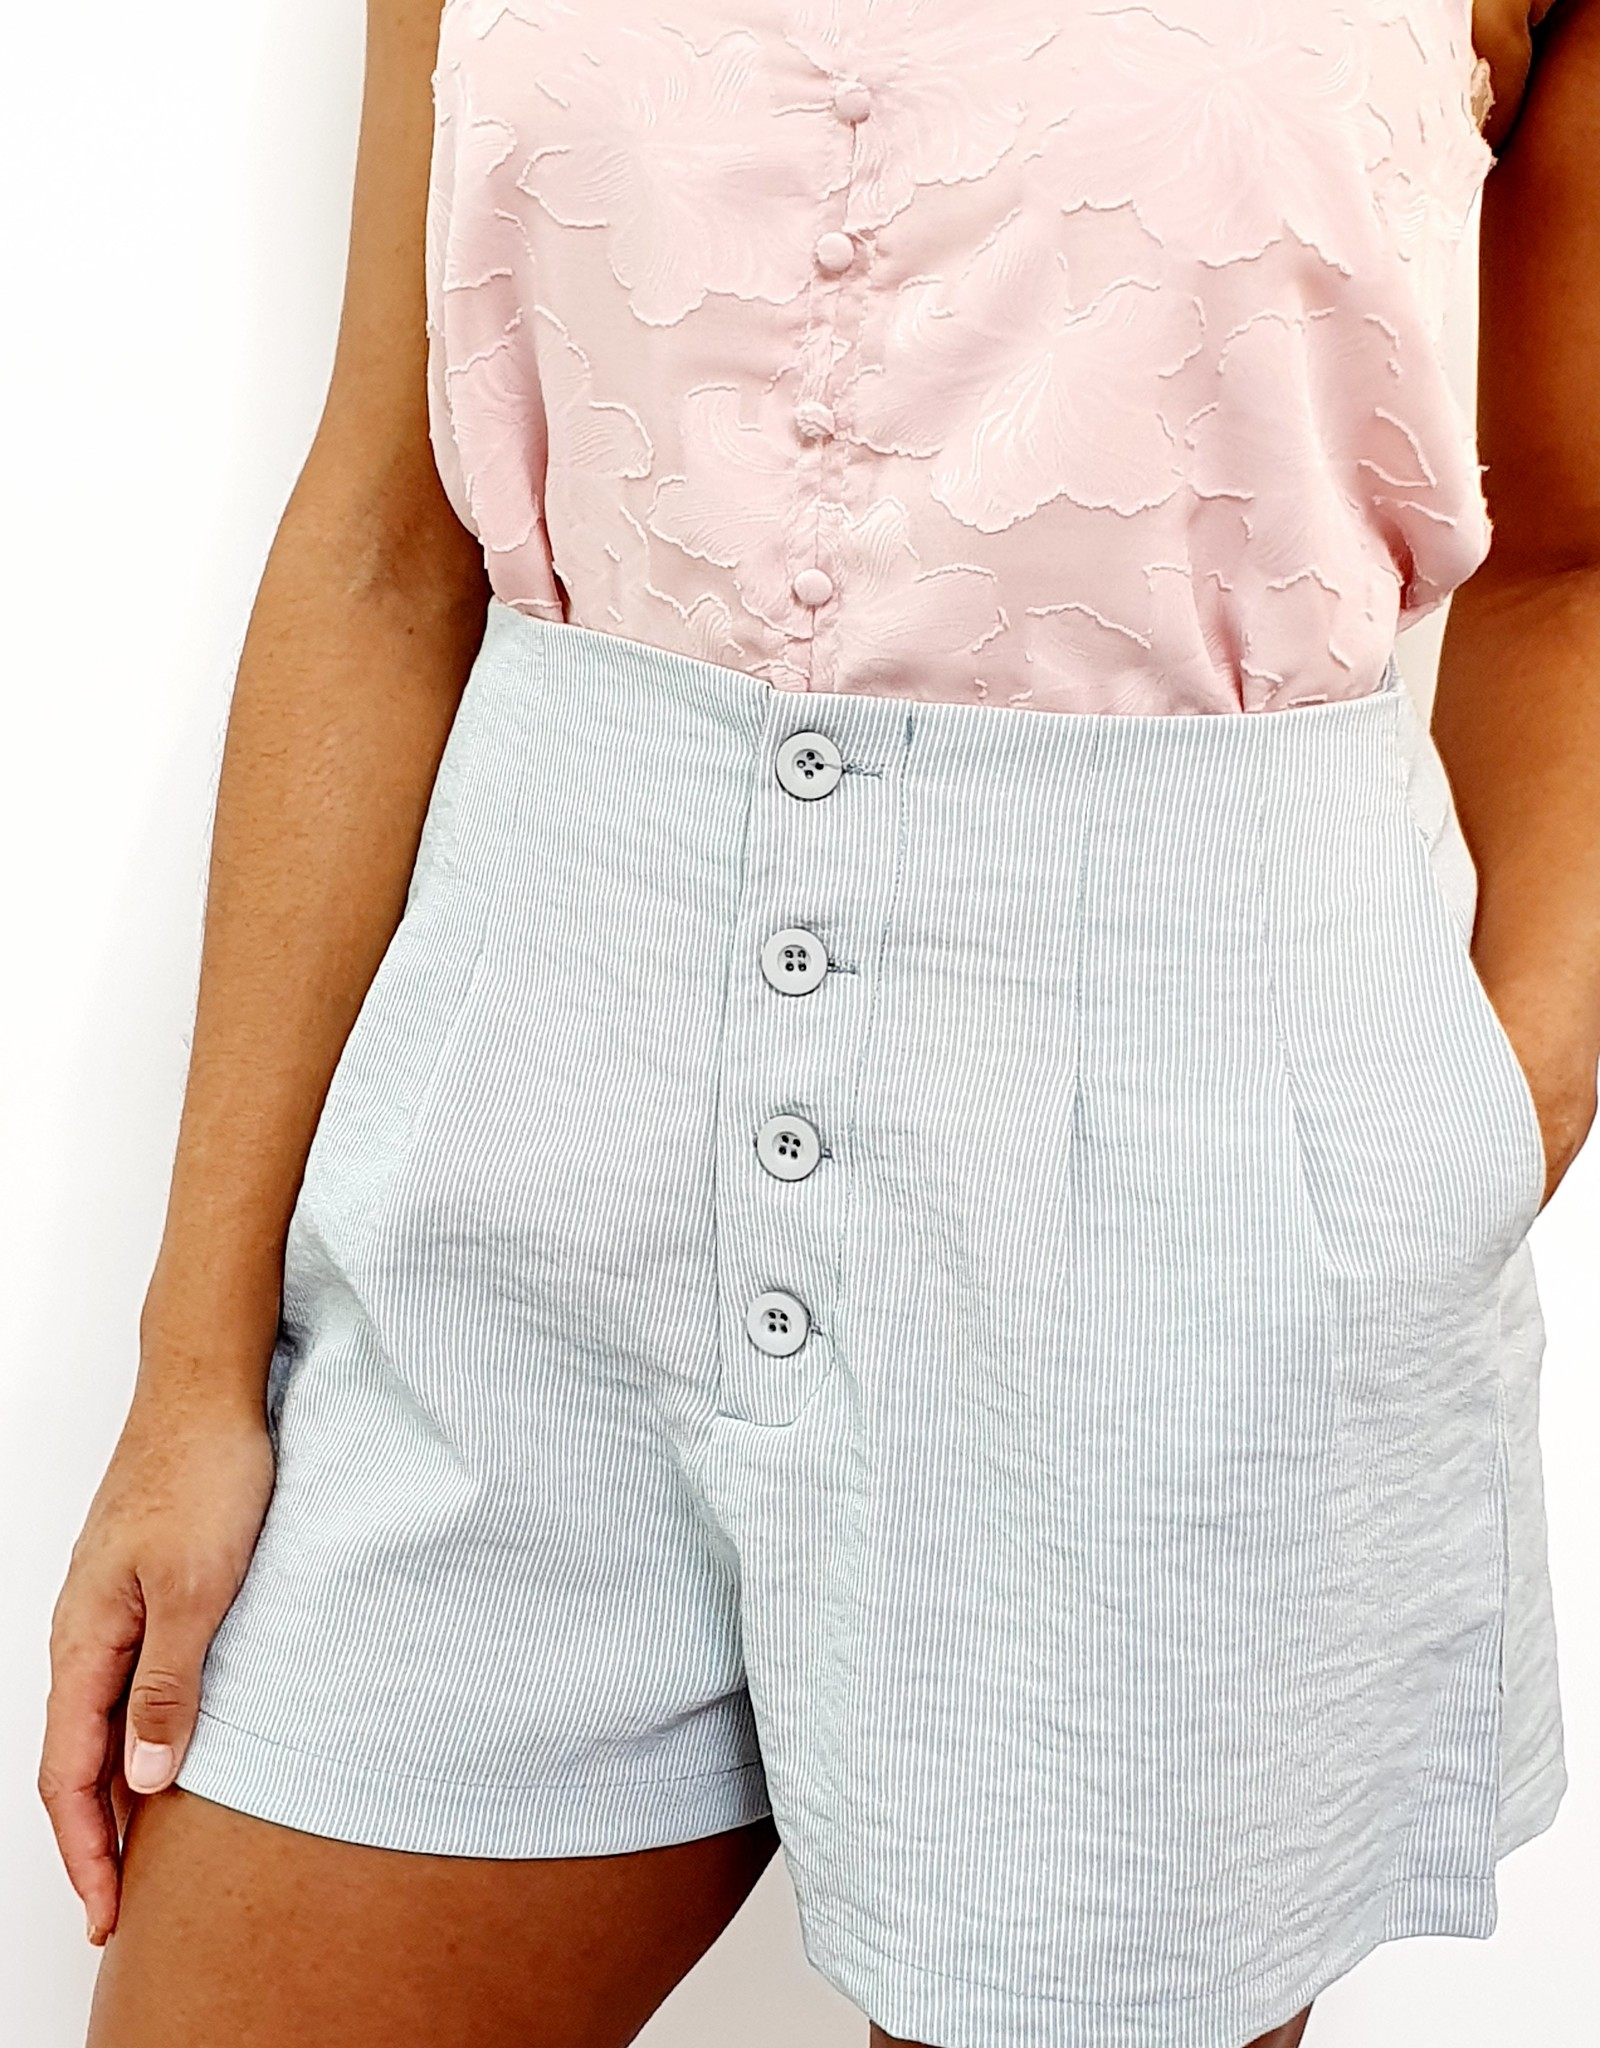 Thé fine top pink